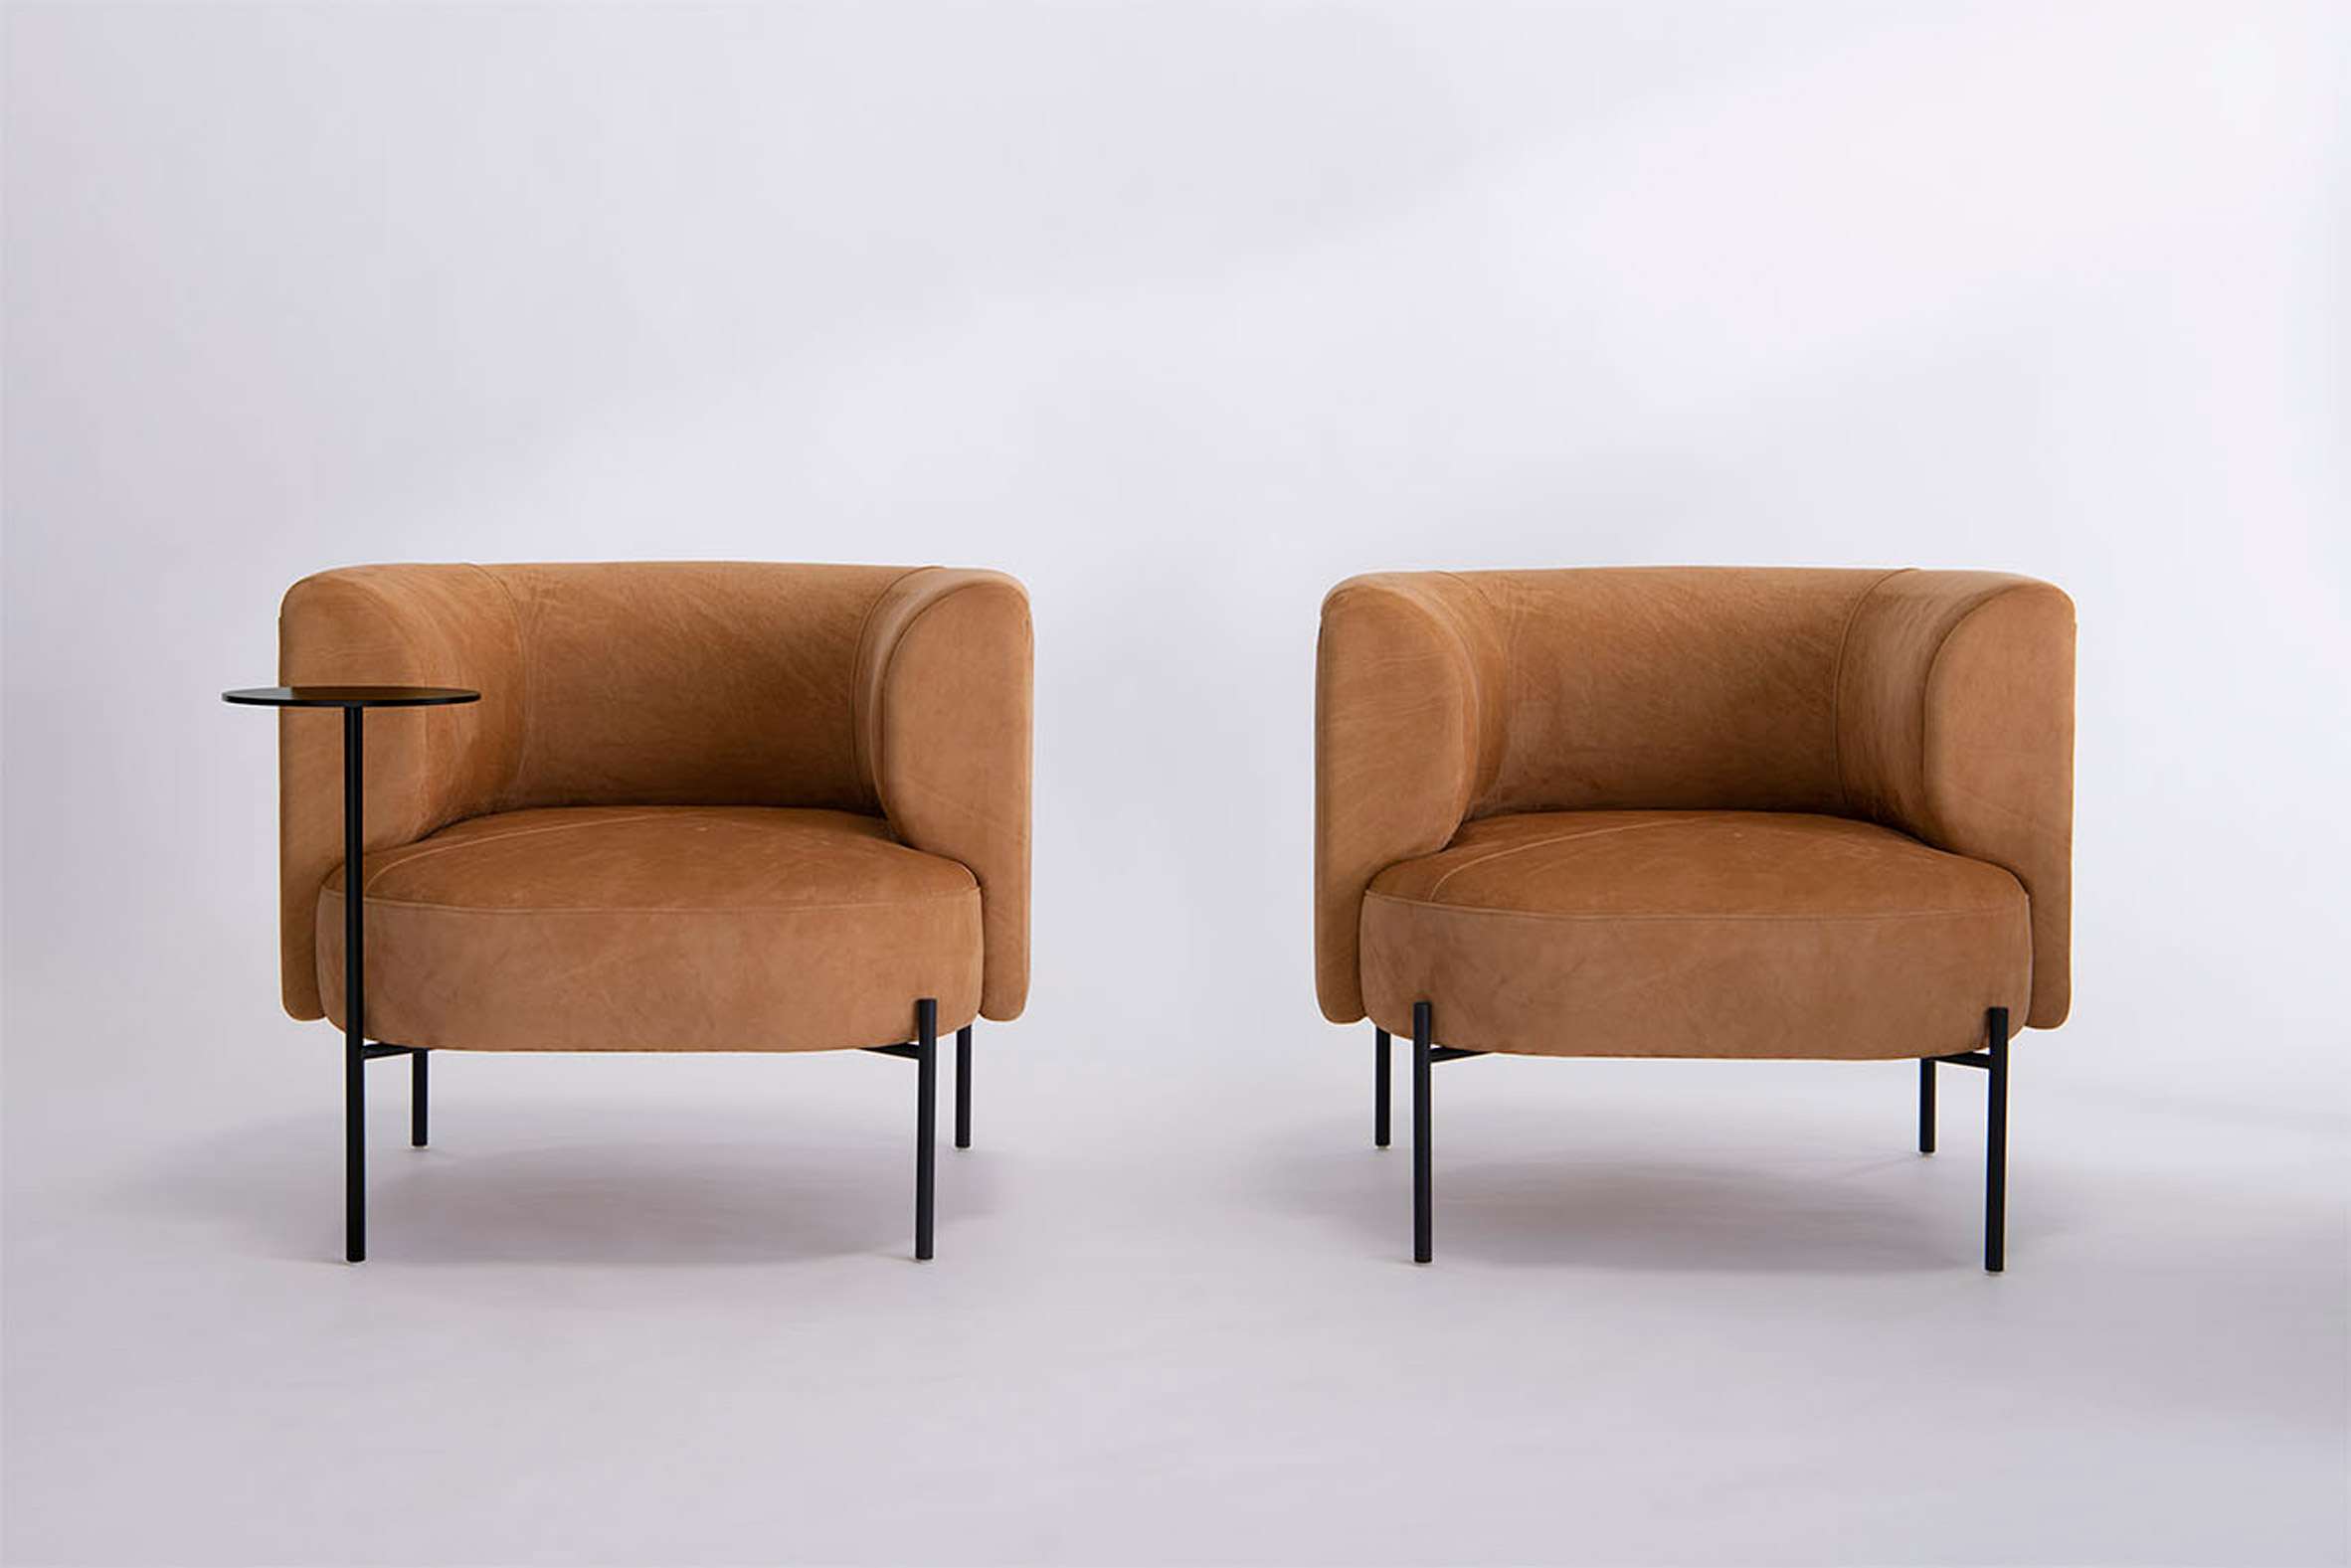 Upholstered chair by Phase Design